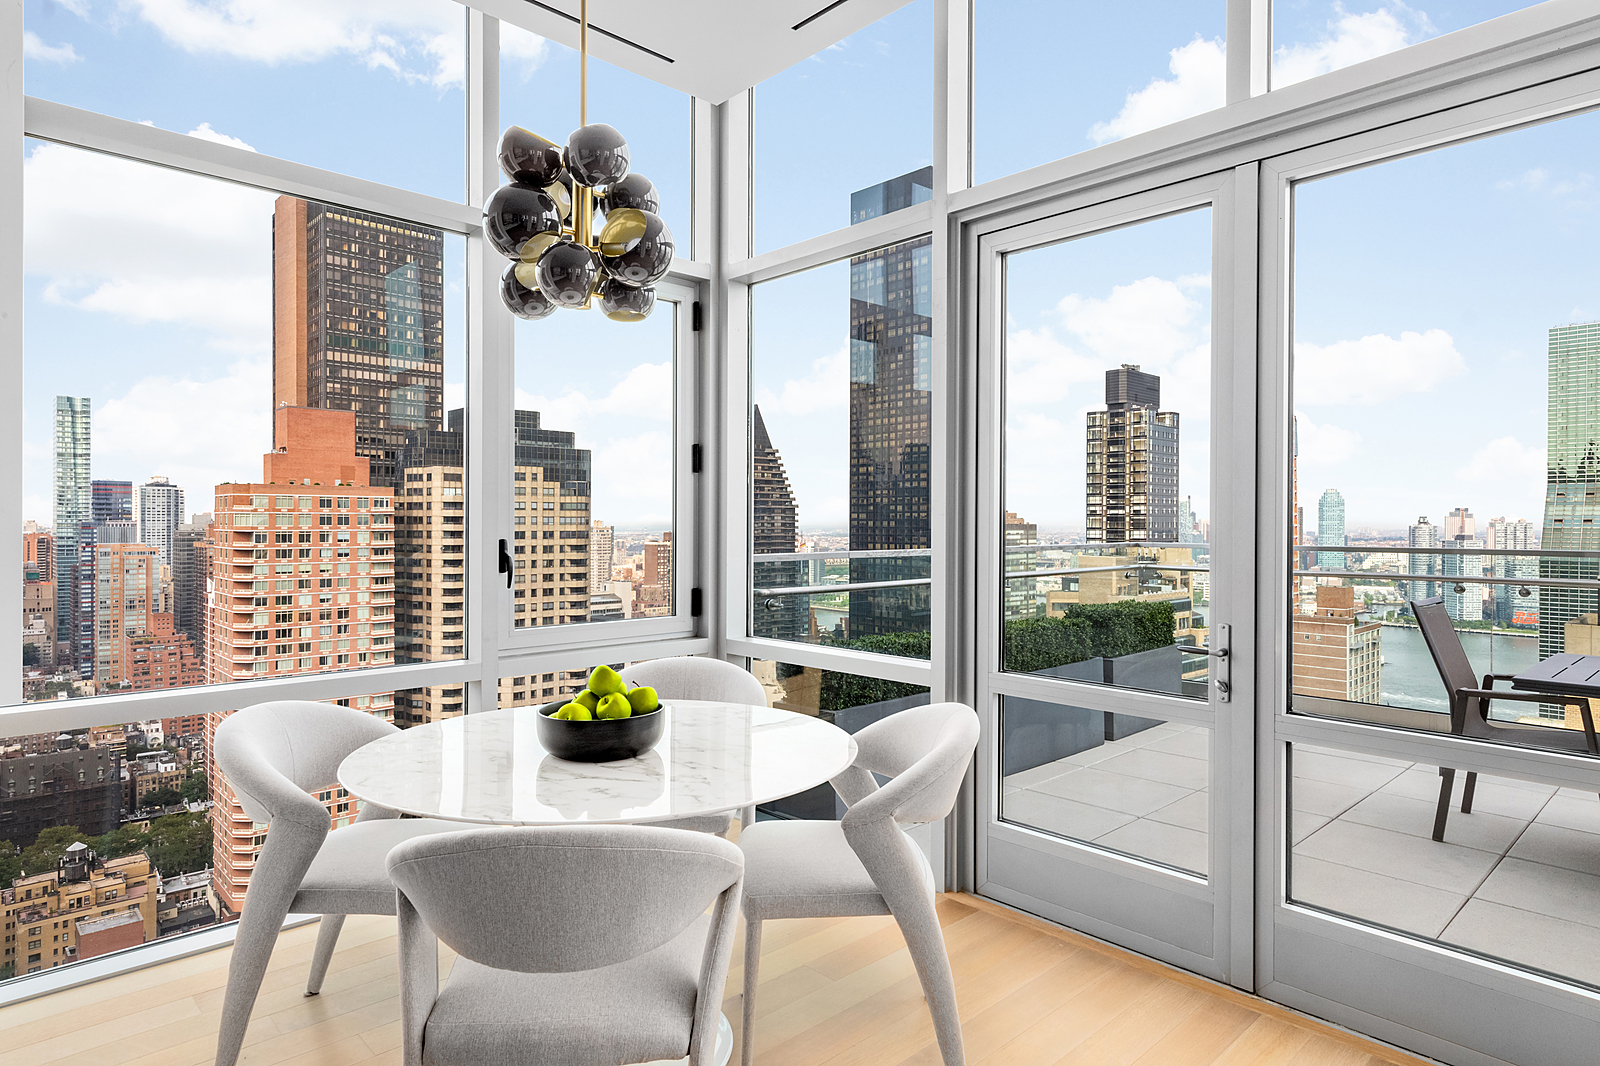 219East44thStreetPH-MidtownNewYork_Aaron_Ross_DouglasElliman_Photography_83045080_high_res